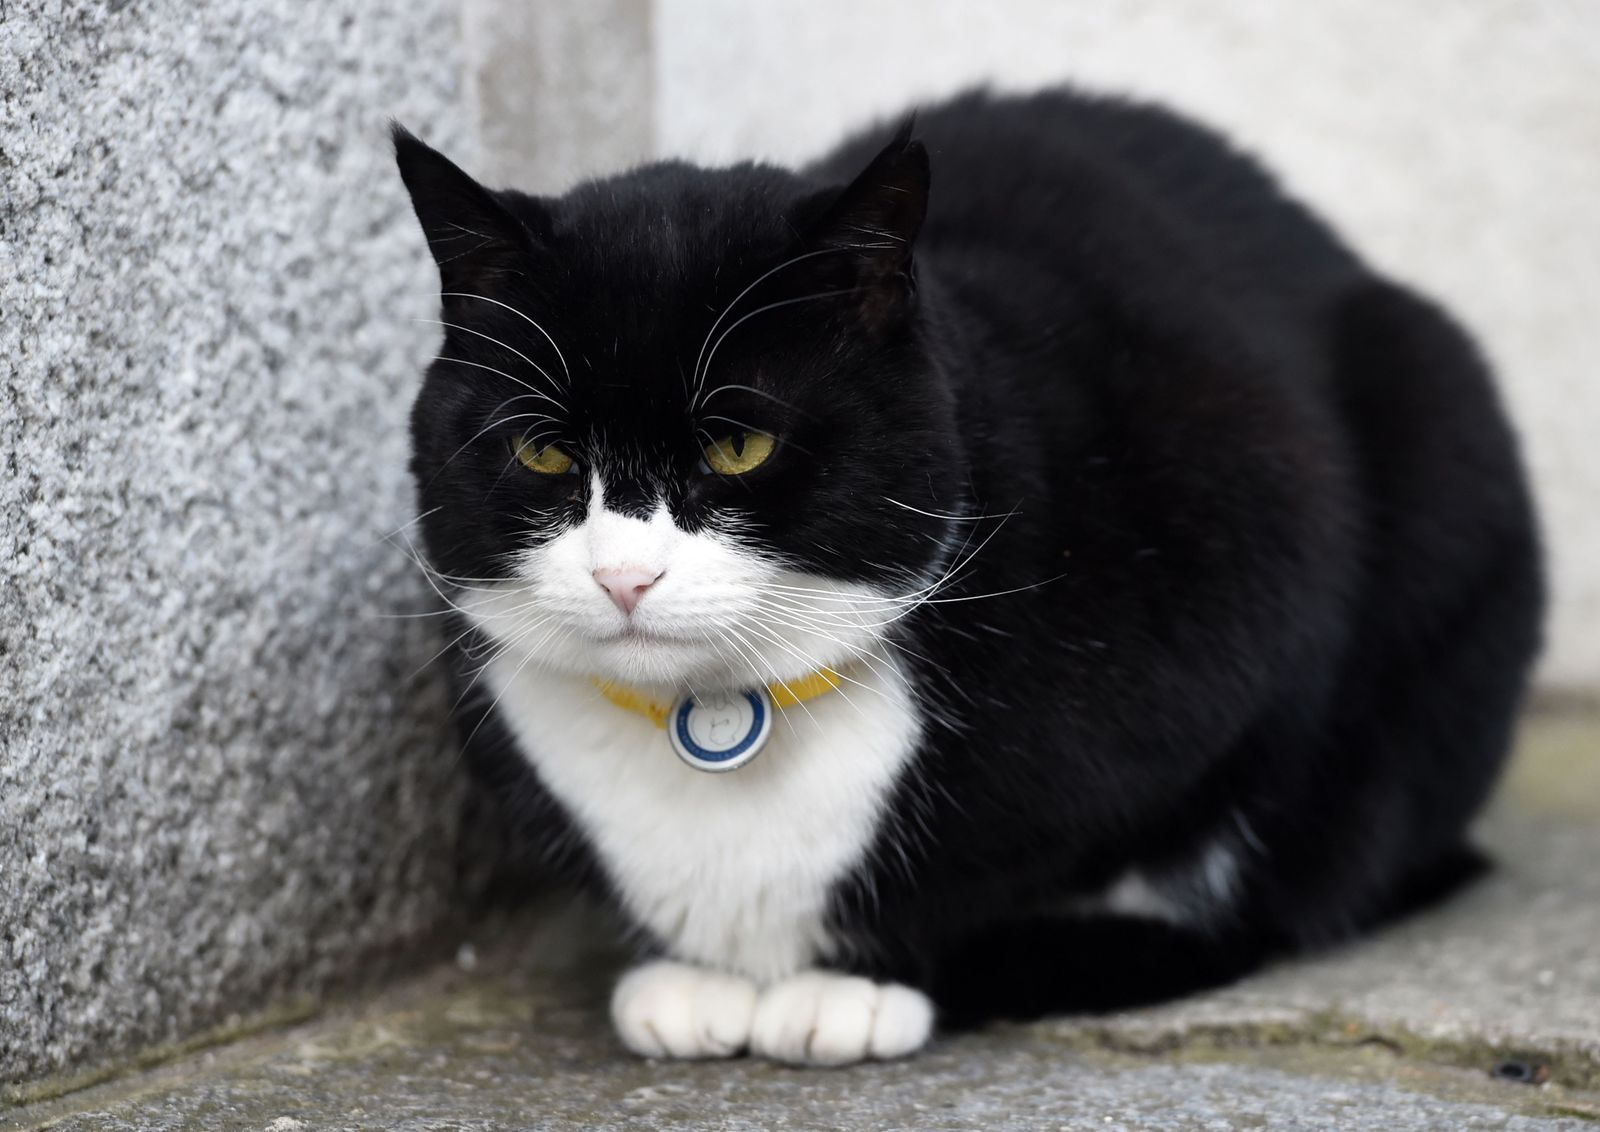 Palmerston, the Foreign office cat retires, London, United Kingdom - 29 Jan 2018